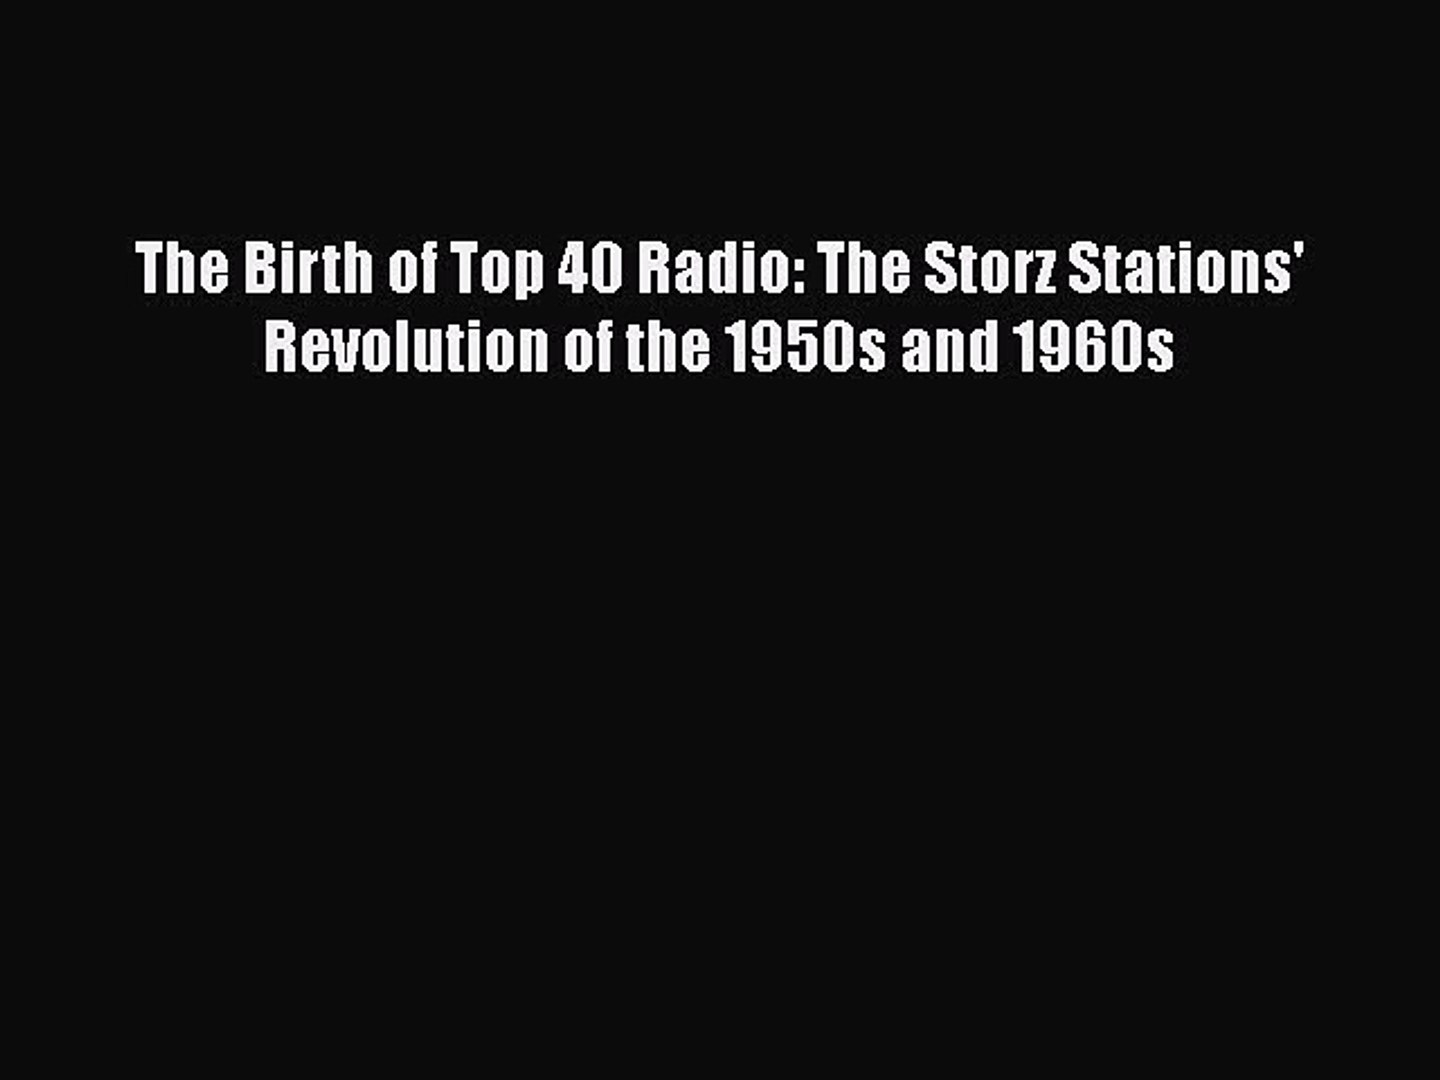 Download The Birth of Top 40 Radio: The Storz Stations' Revolution of the 1950s and 1960s